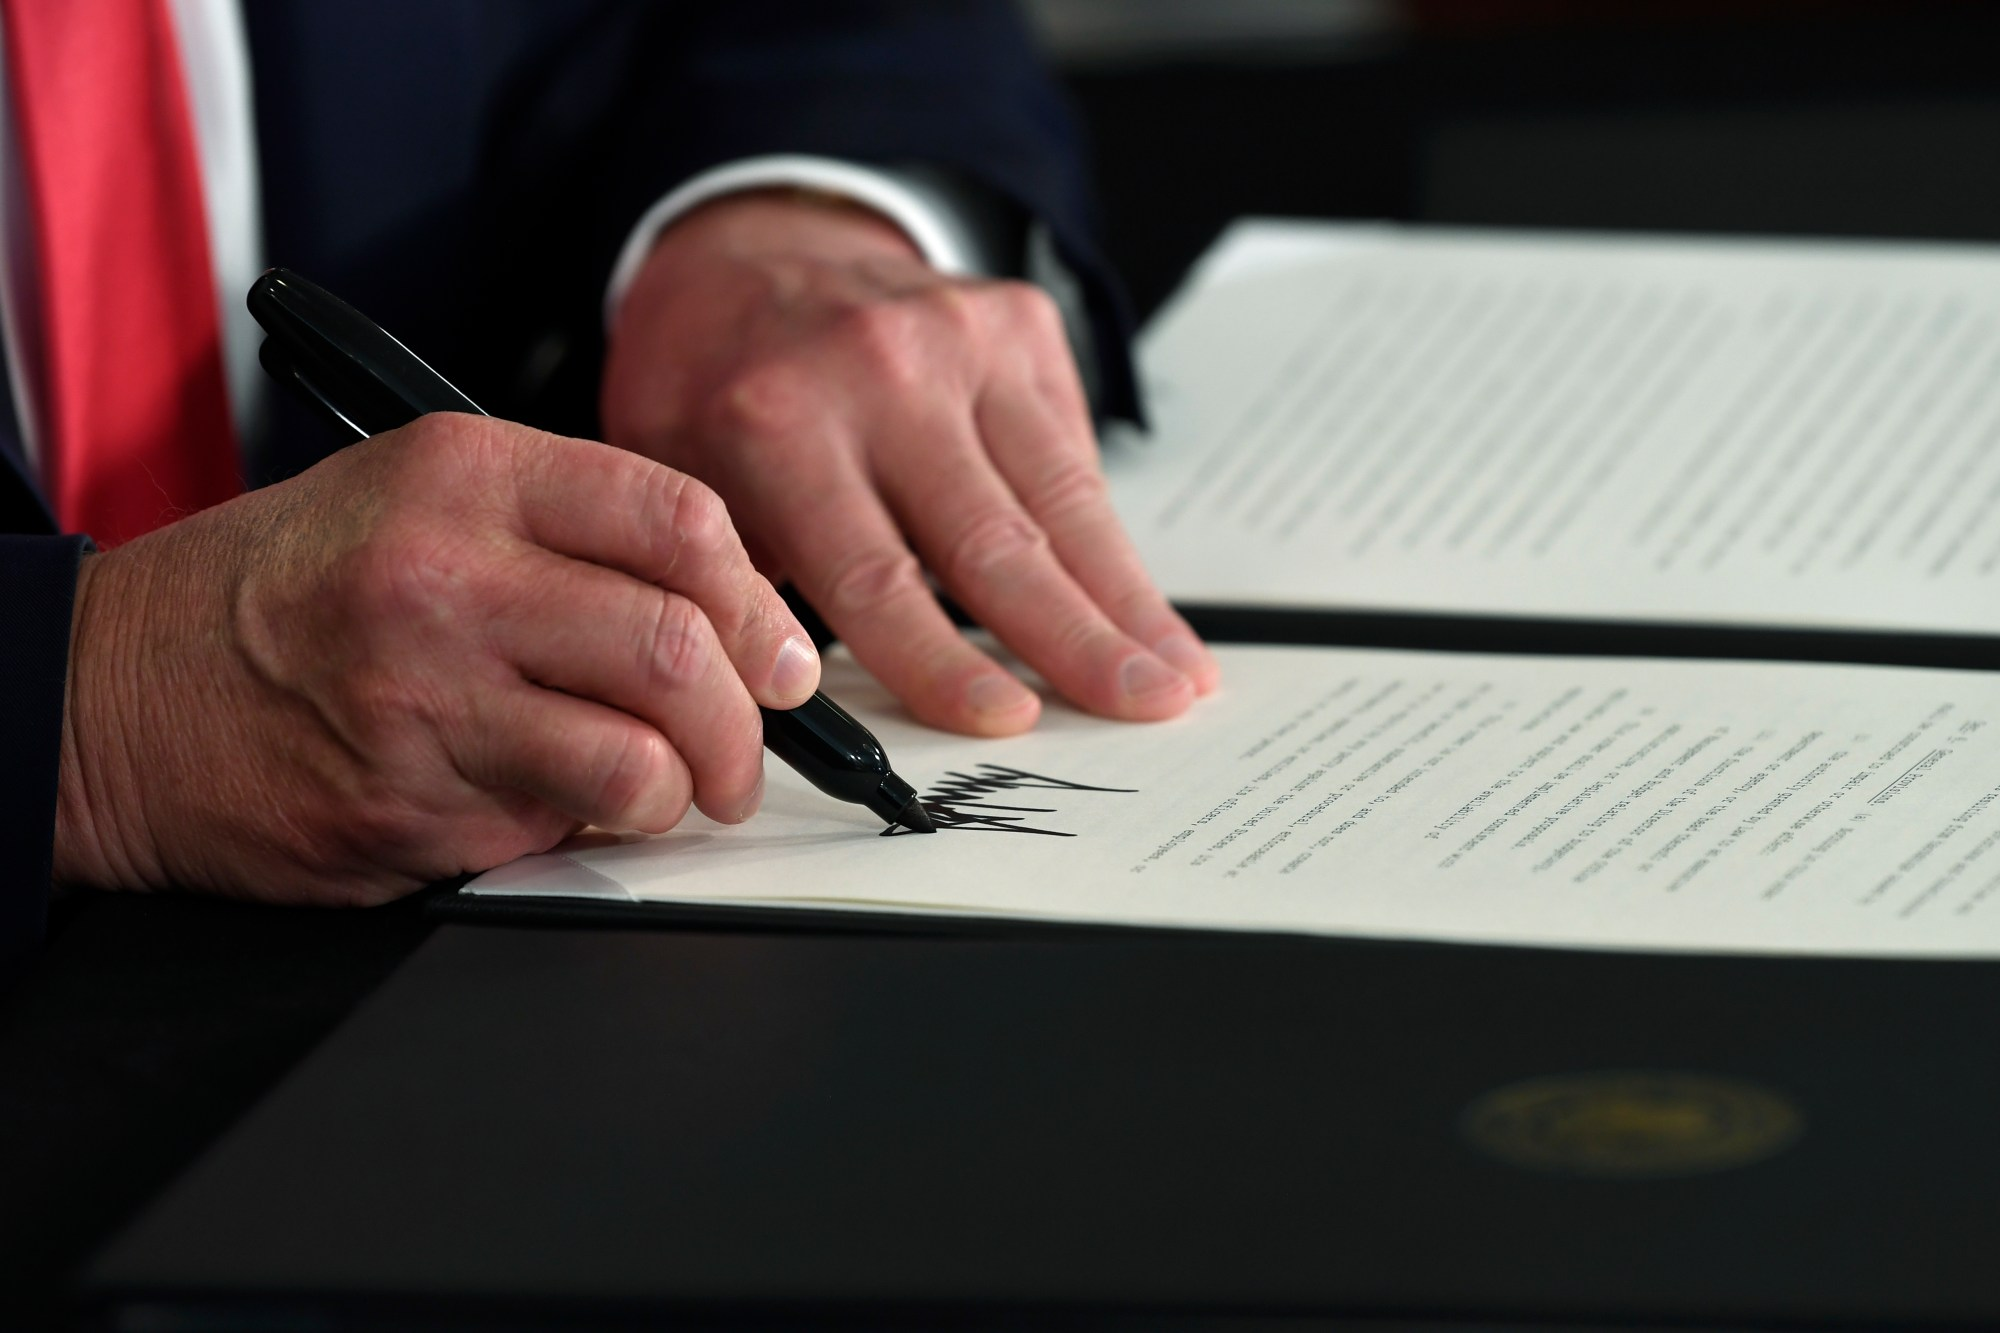 Donald Trump signs an executive order during a news conference at the Trump National Golf Club in Bedminster, N.J., Saturday, Aug. 8, 2020. (AP Photo/Susan Walsh)